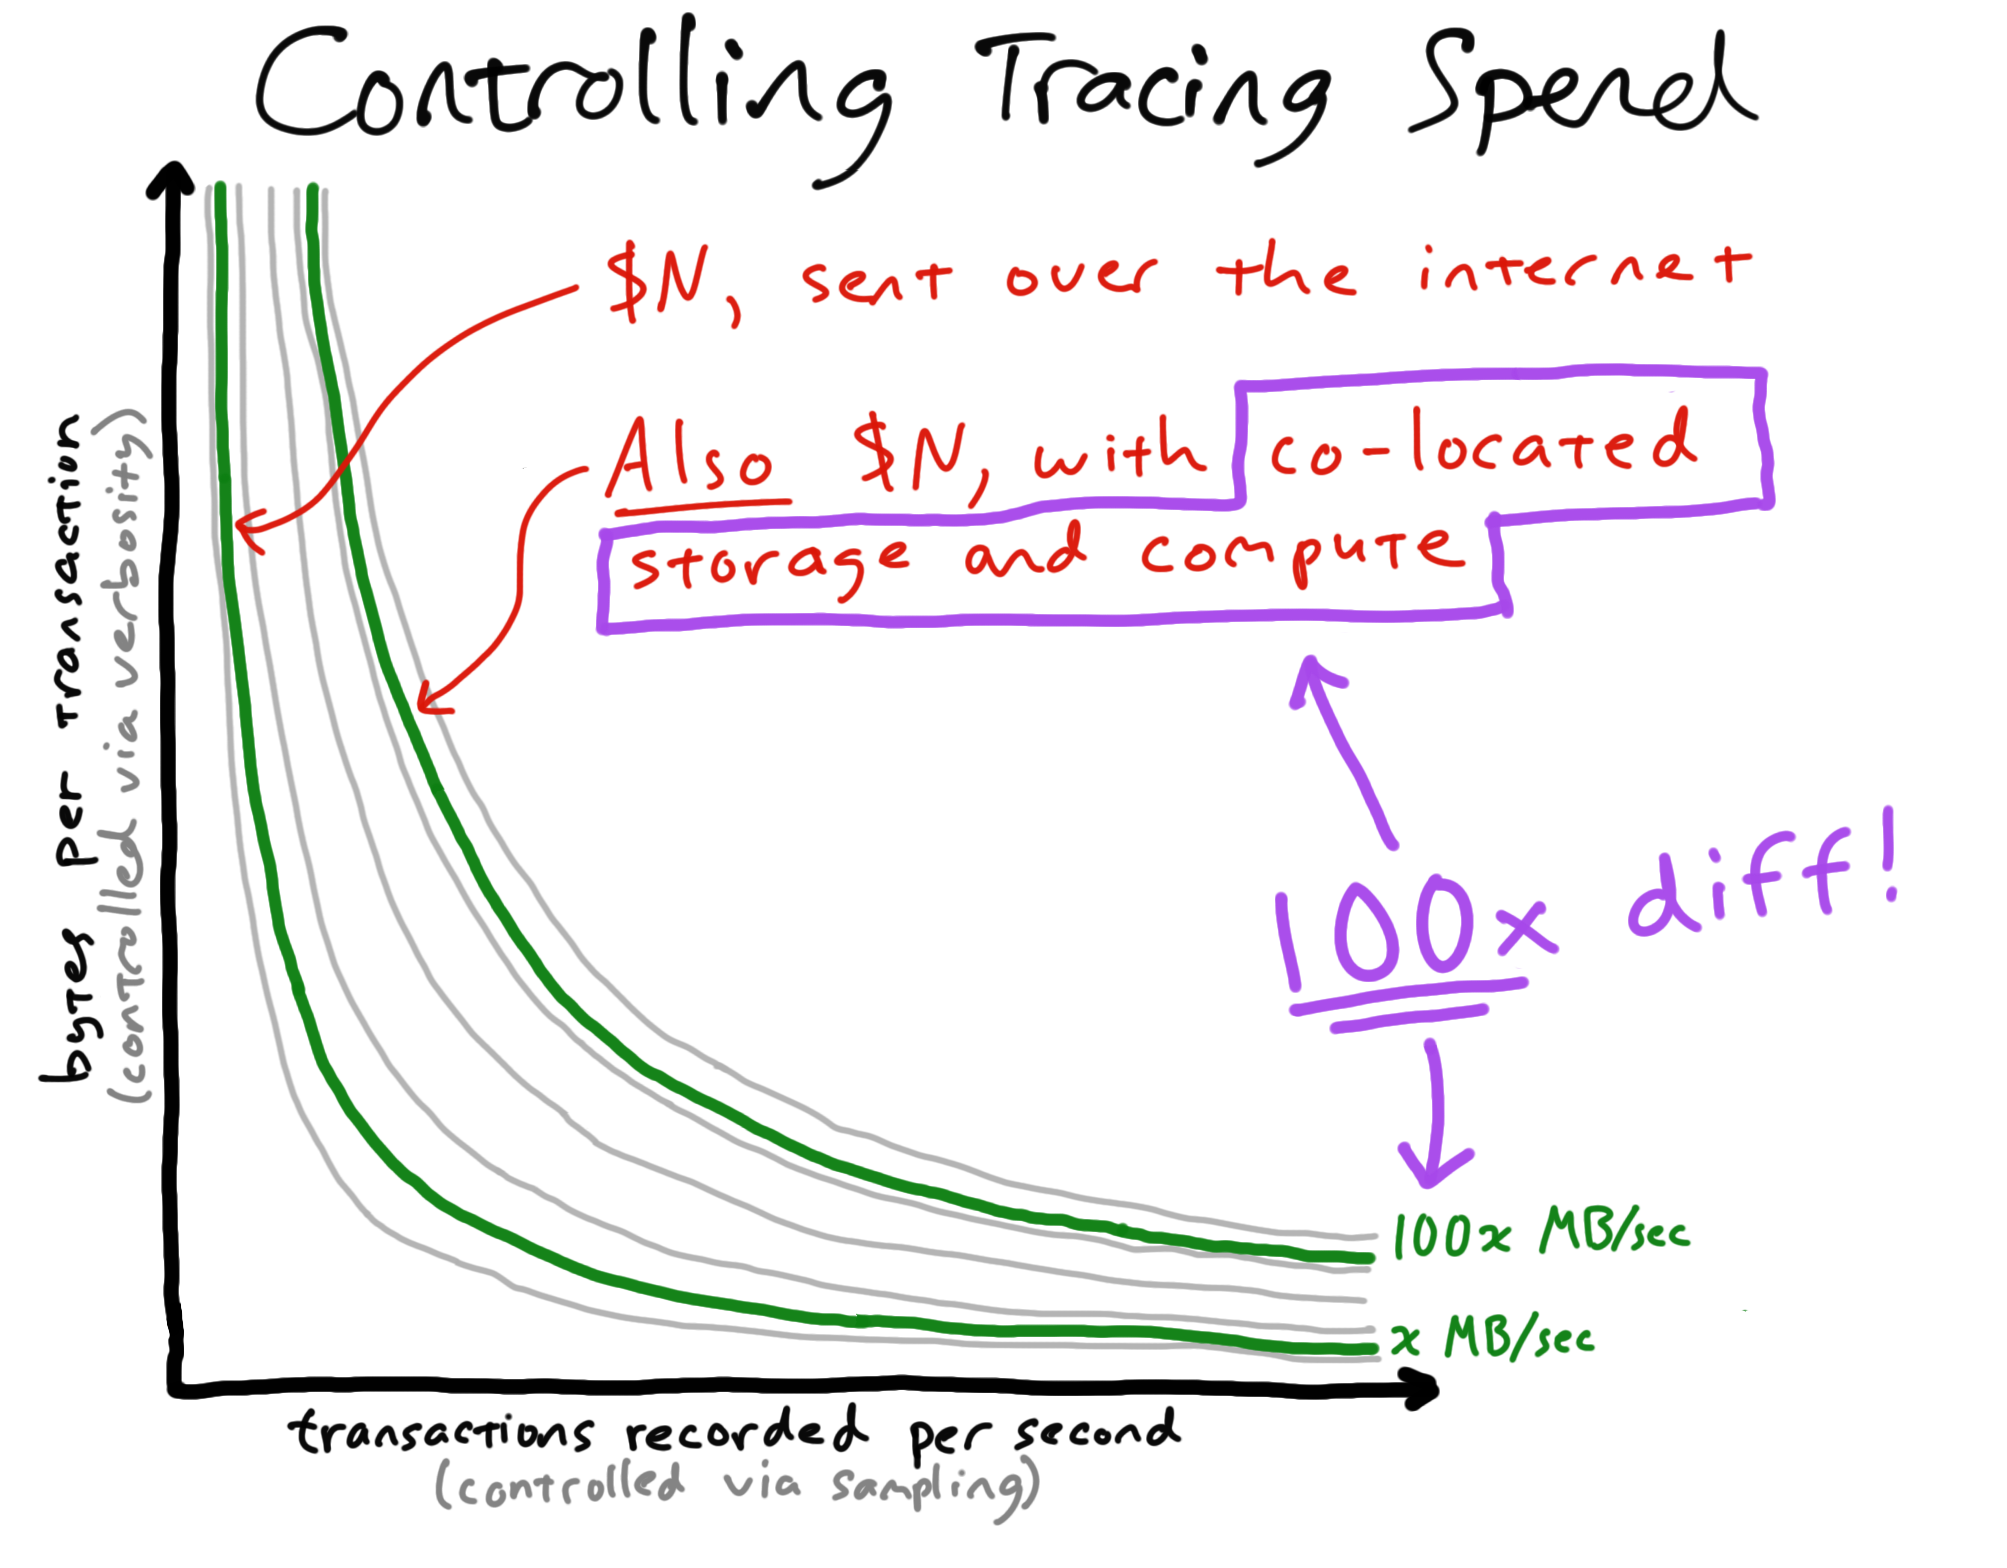 Controlling Tracing Spend